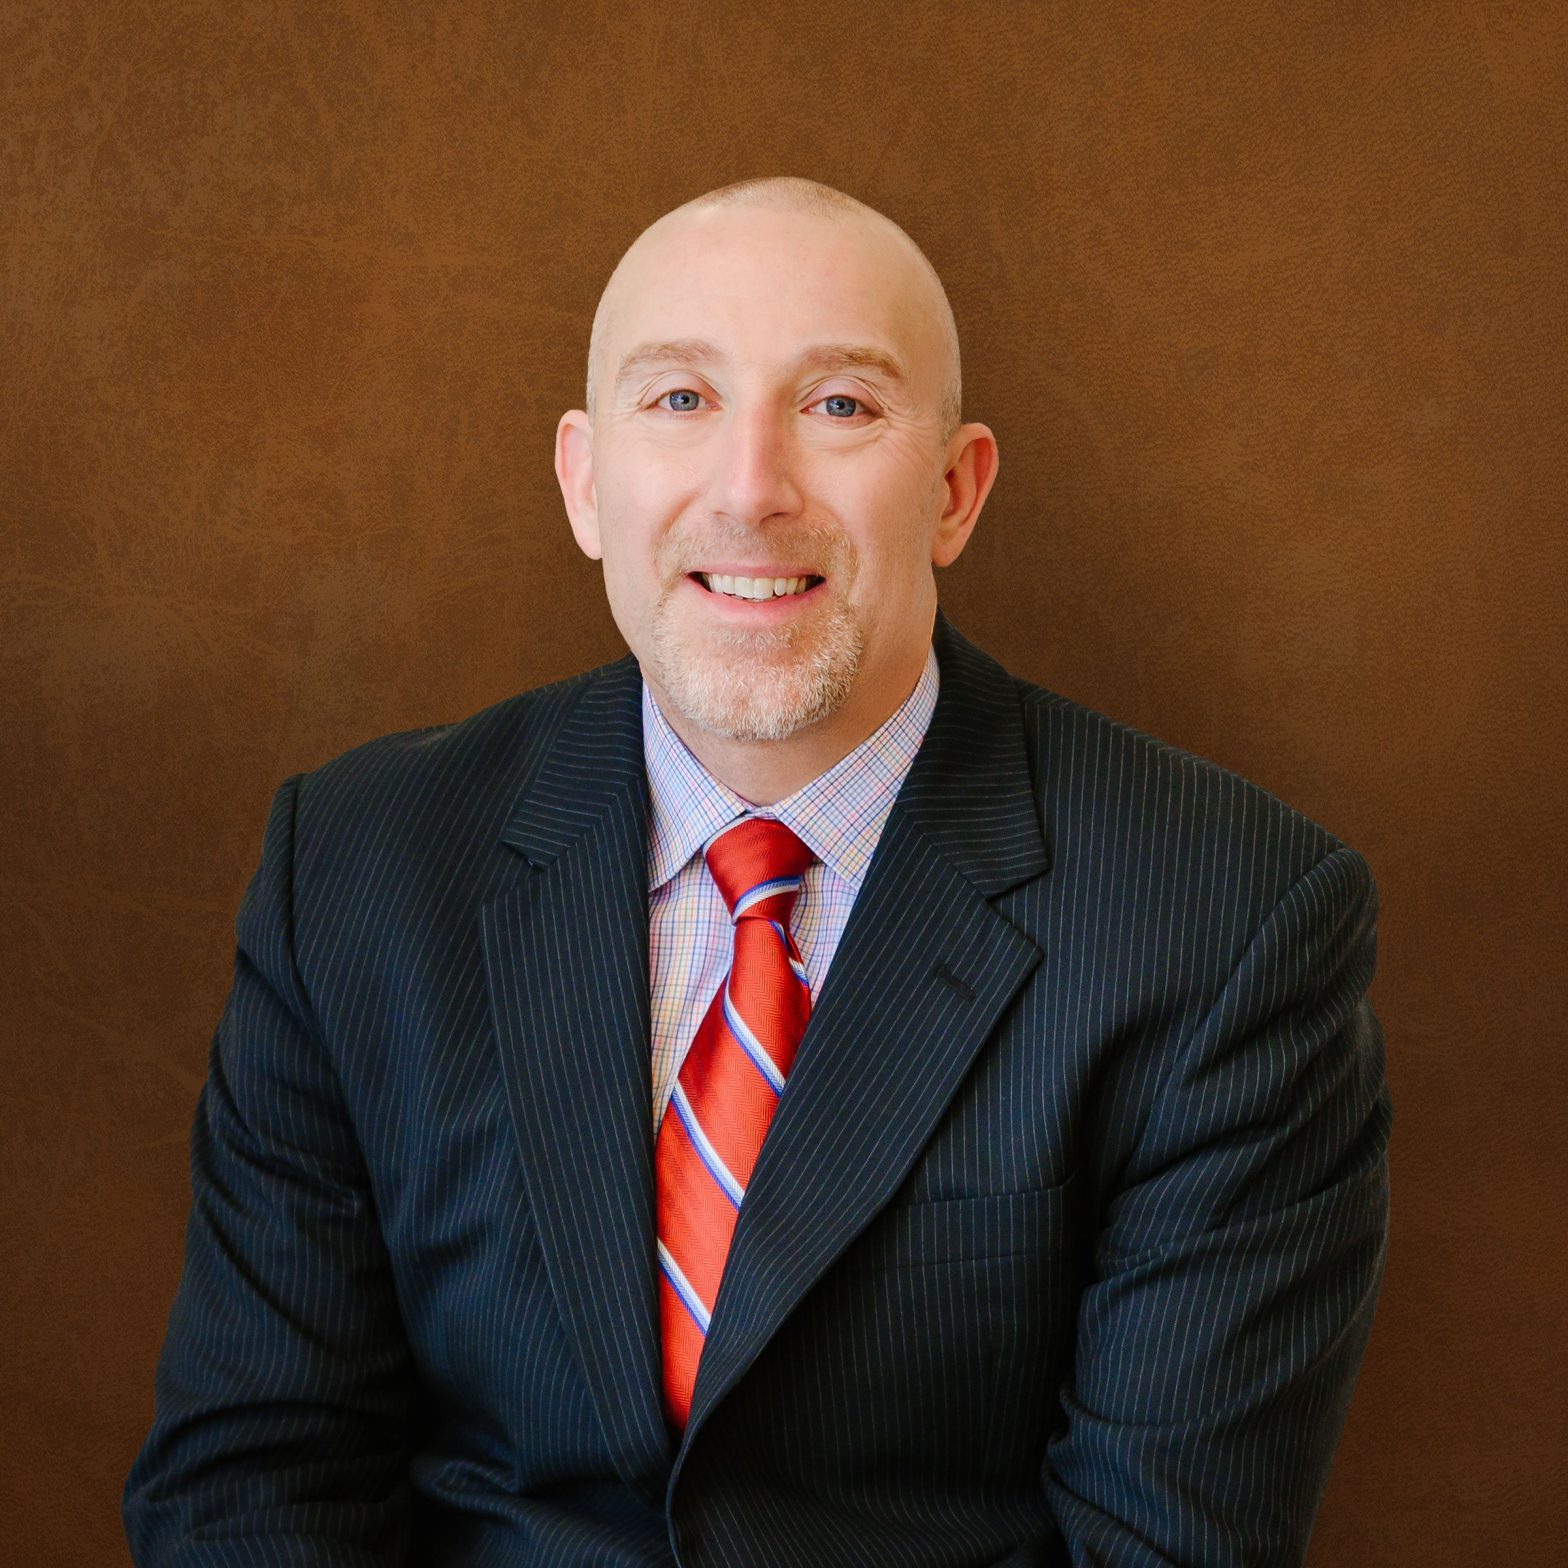 Family Law Attorney David Kowalski of Kowalski Family Law LLC